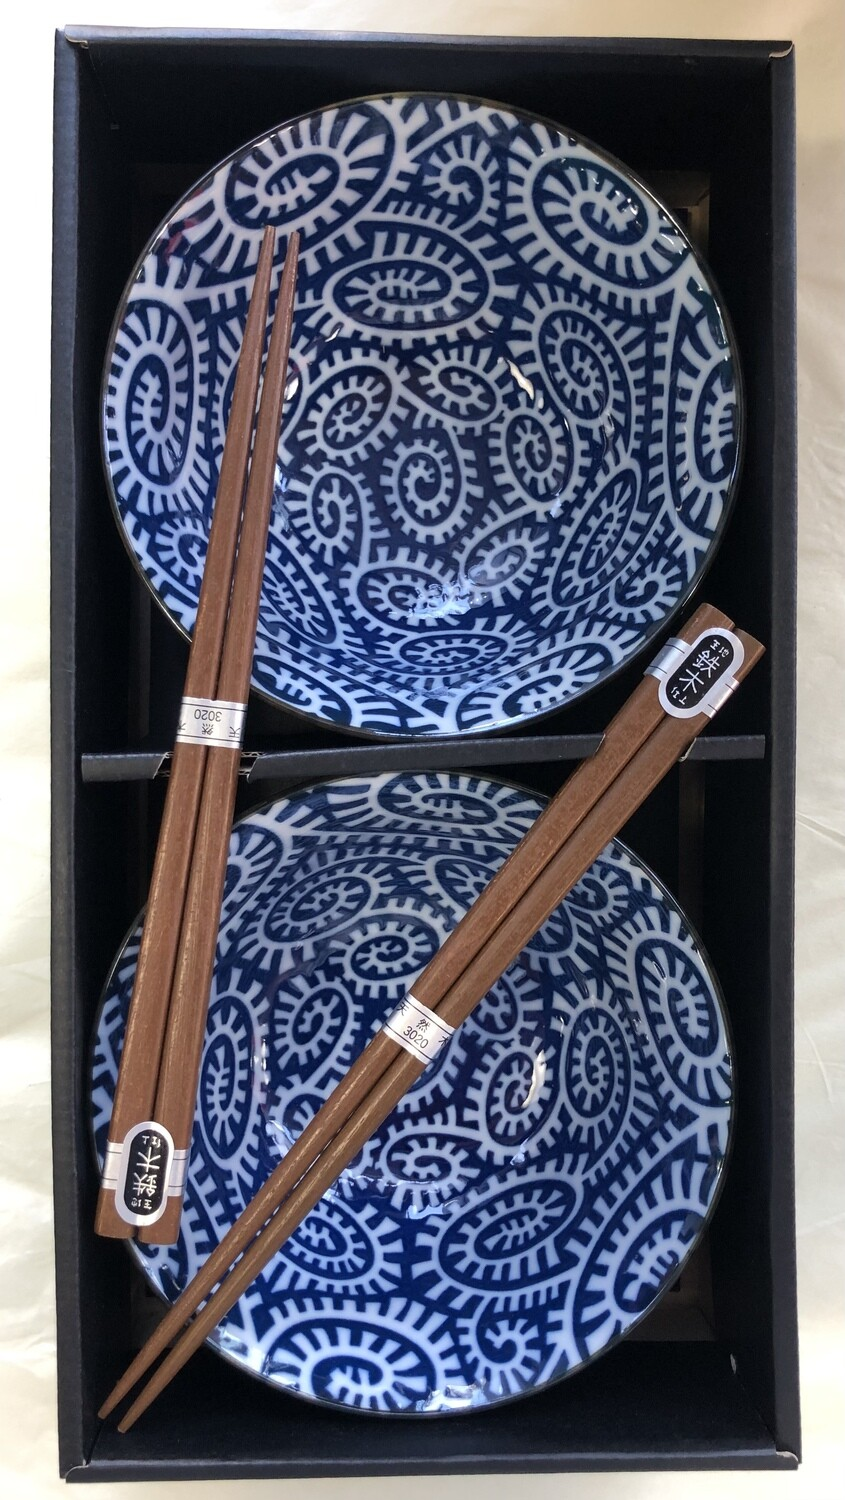 CONCEPT JAPAN - Takokarakusa Blue Set of 2 Bowls and Chopsticks 14.5cm